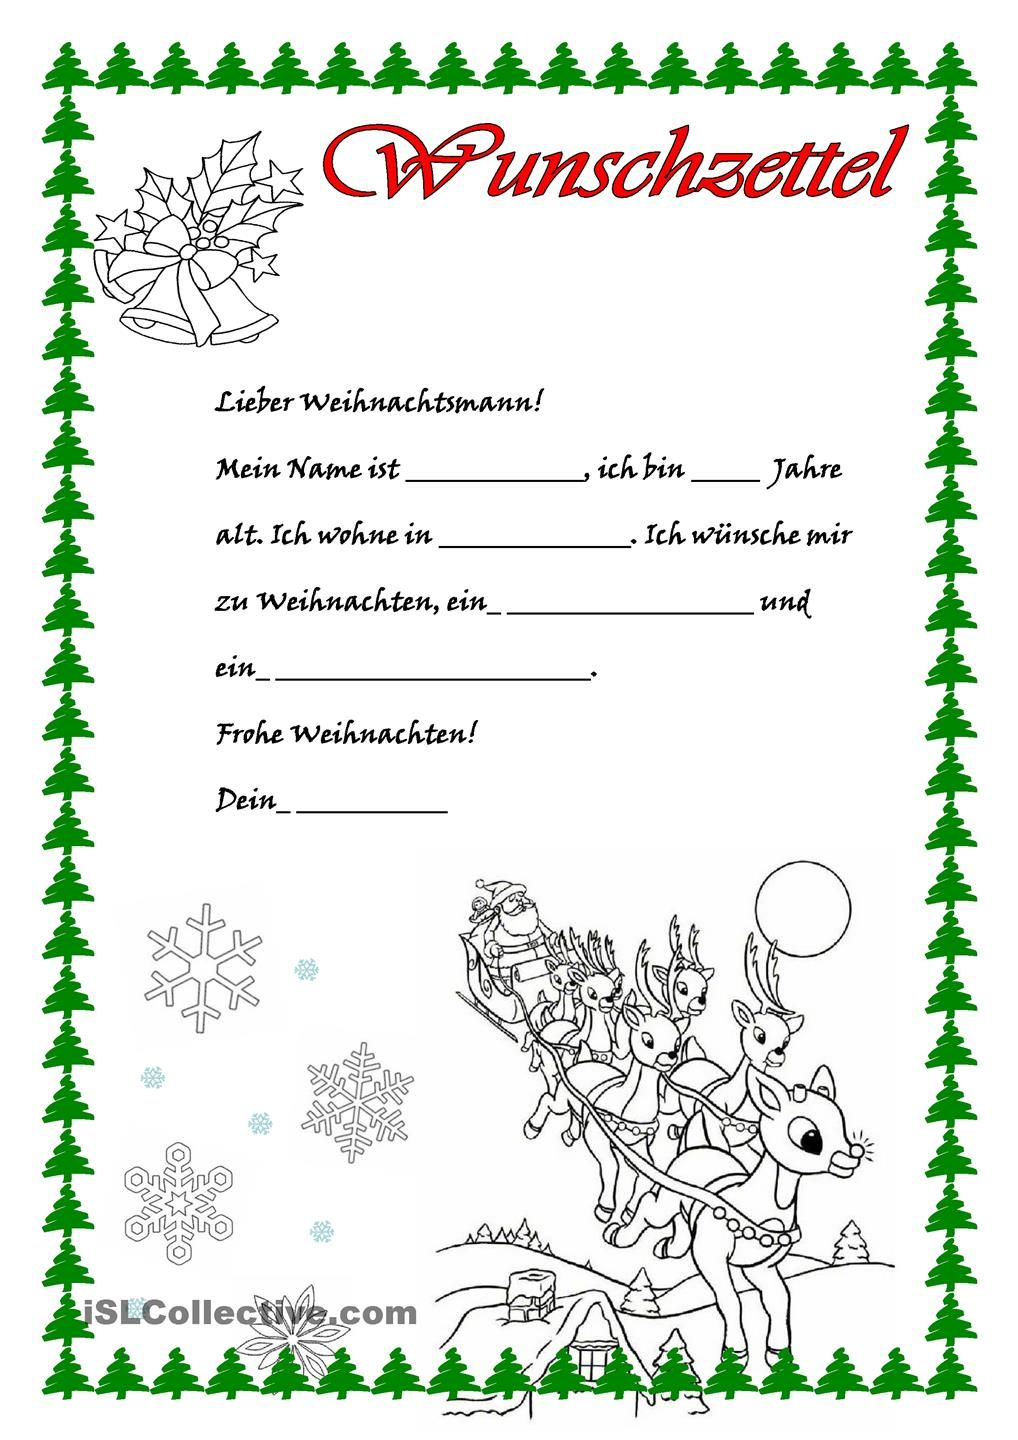 Wunschzettel | Deutsch | Pinterest | German, Kindergarten and Craft